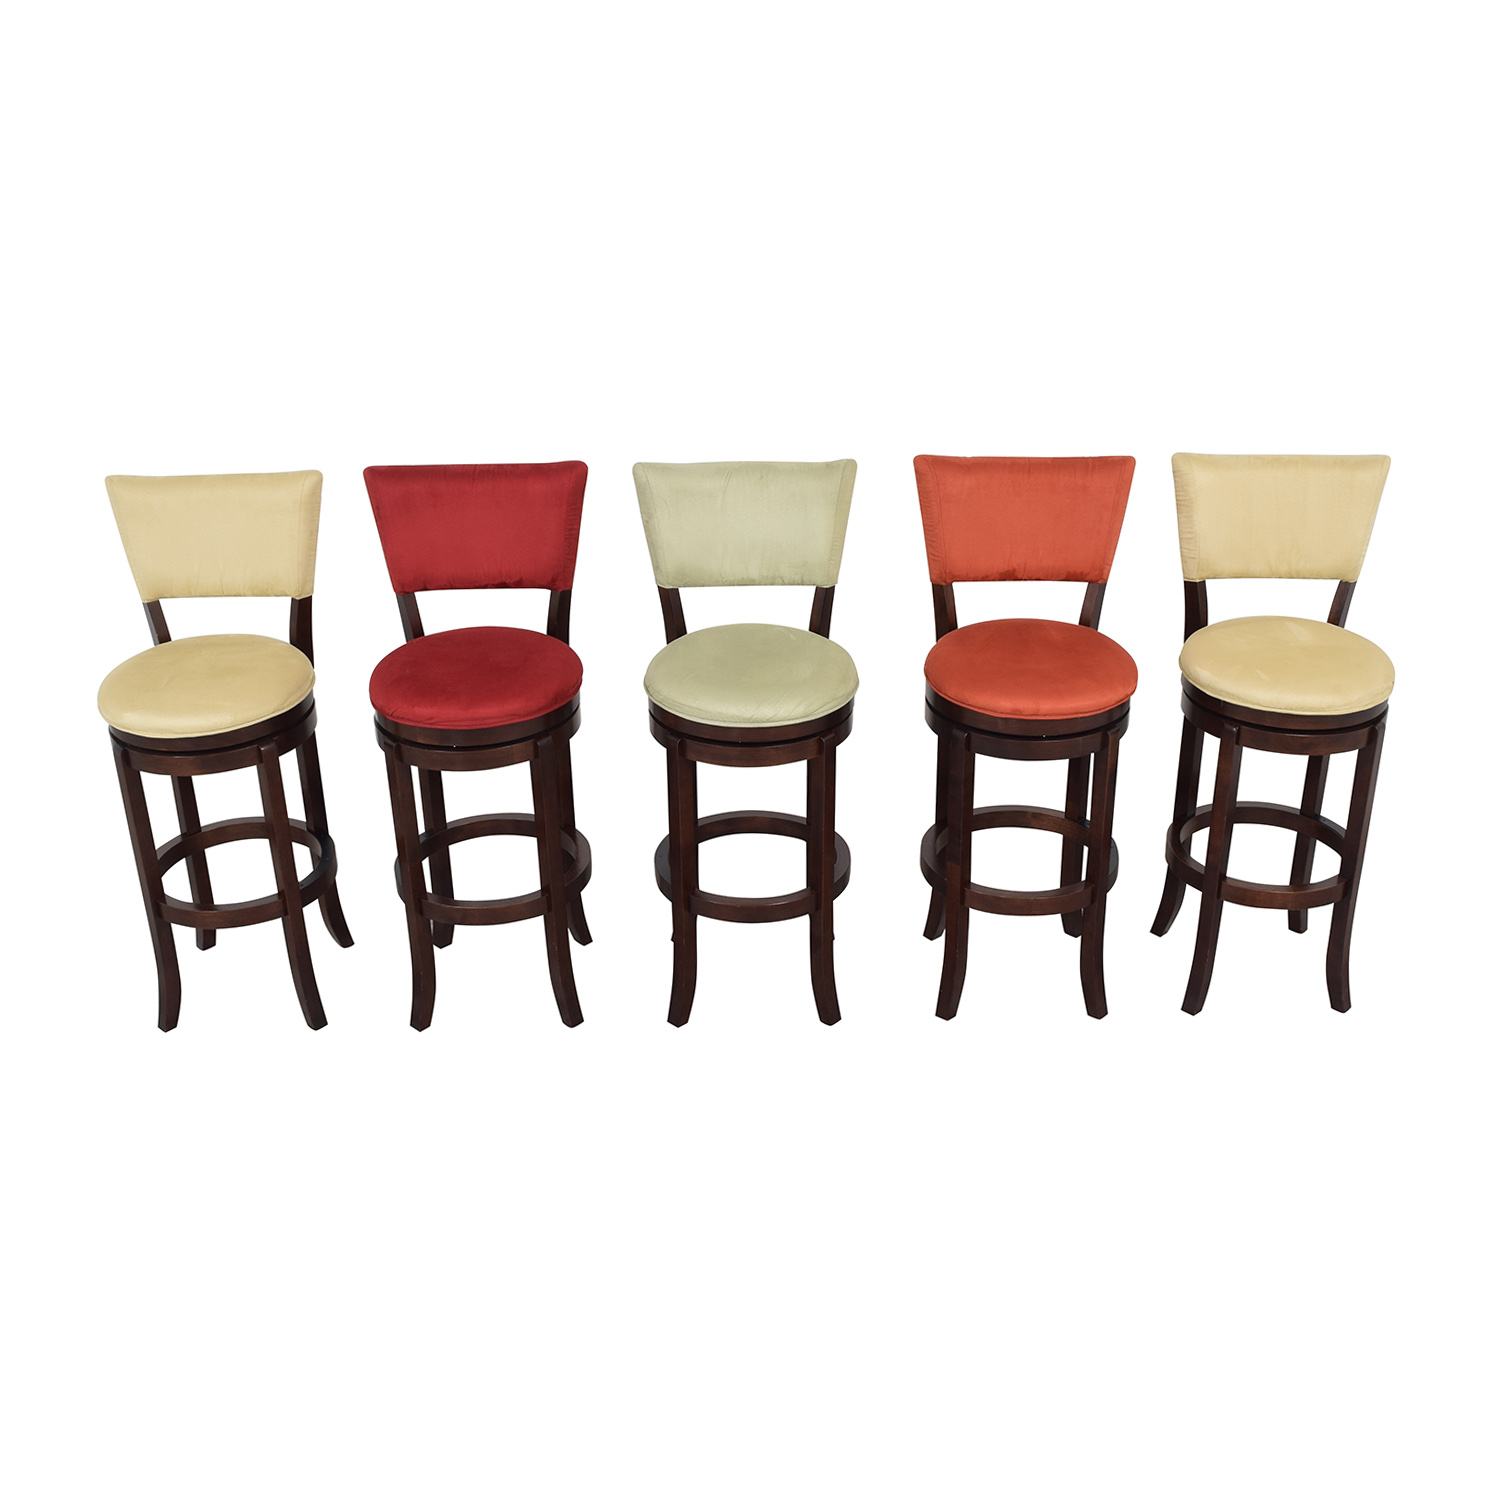 Rooms To Go Rooms To Go Keefer Bar Stools used